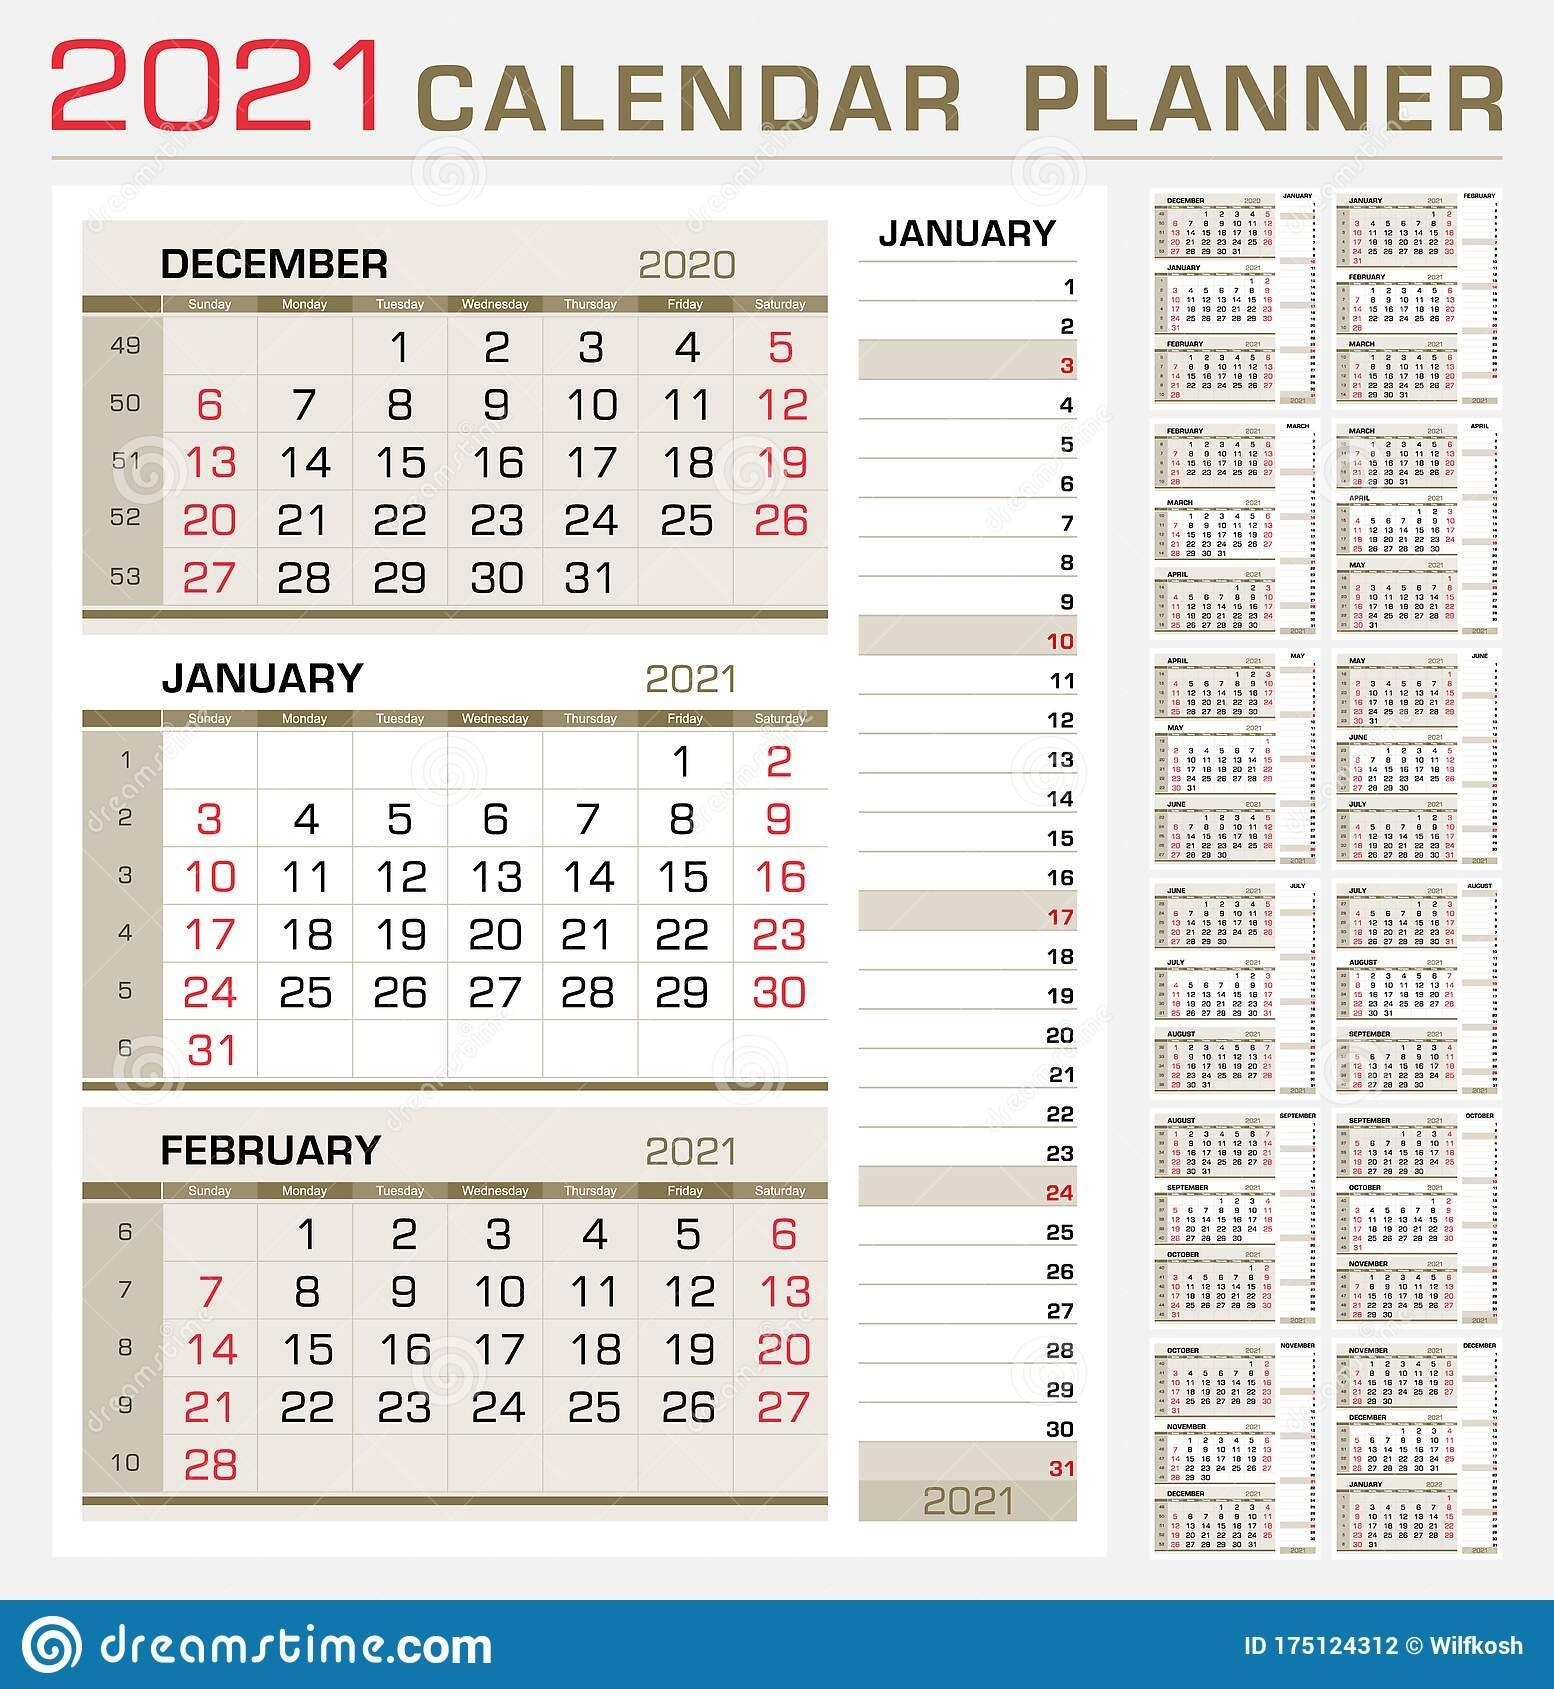 Calendar Planner 2021. Week Start From Sunday. 3 Month Calendar On Page, With Flush Right Stripe pertaining to Calendar Templates 3 Months Per Page 2021 Graphics